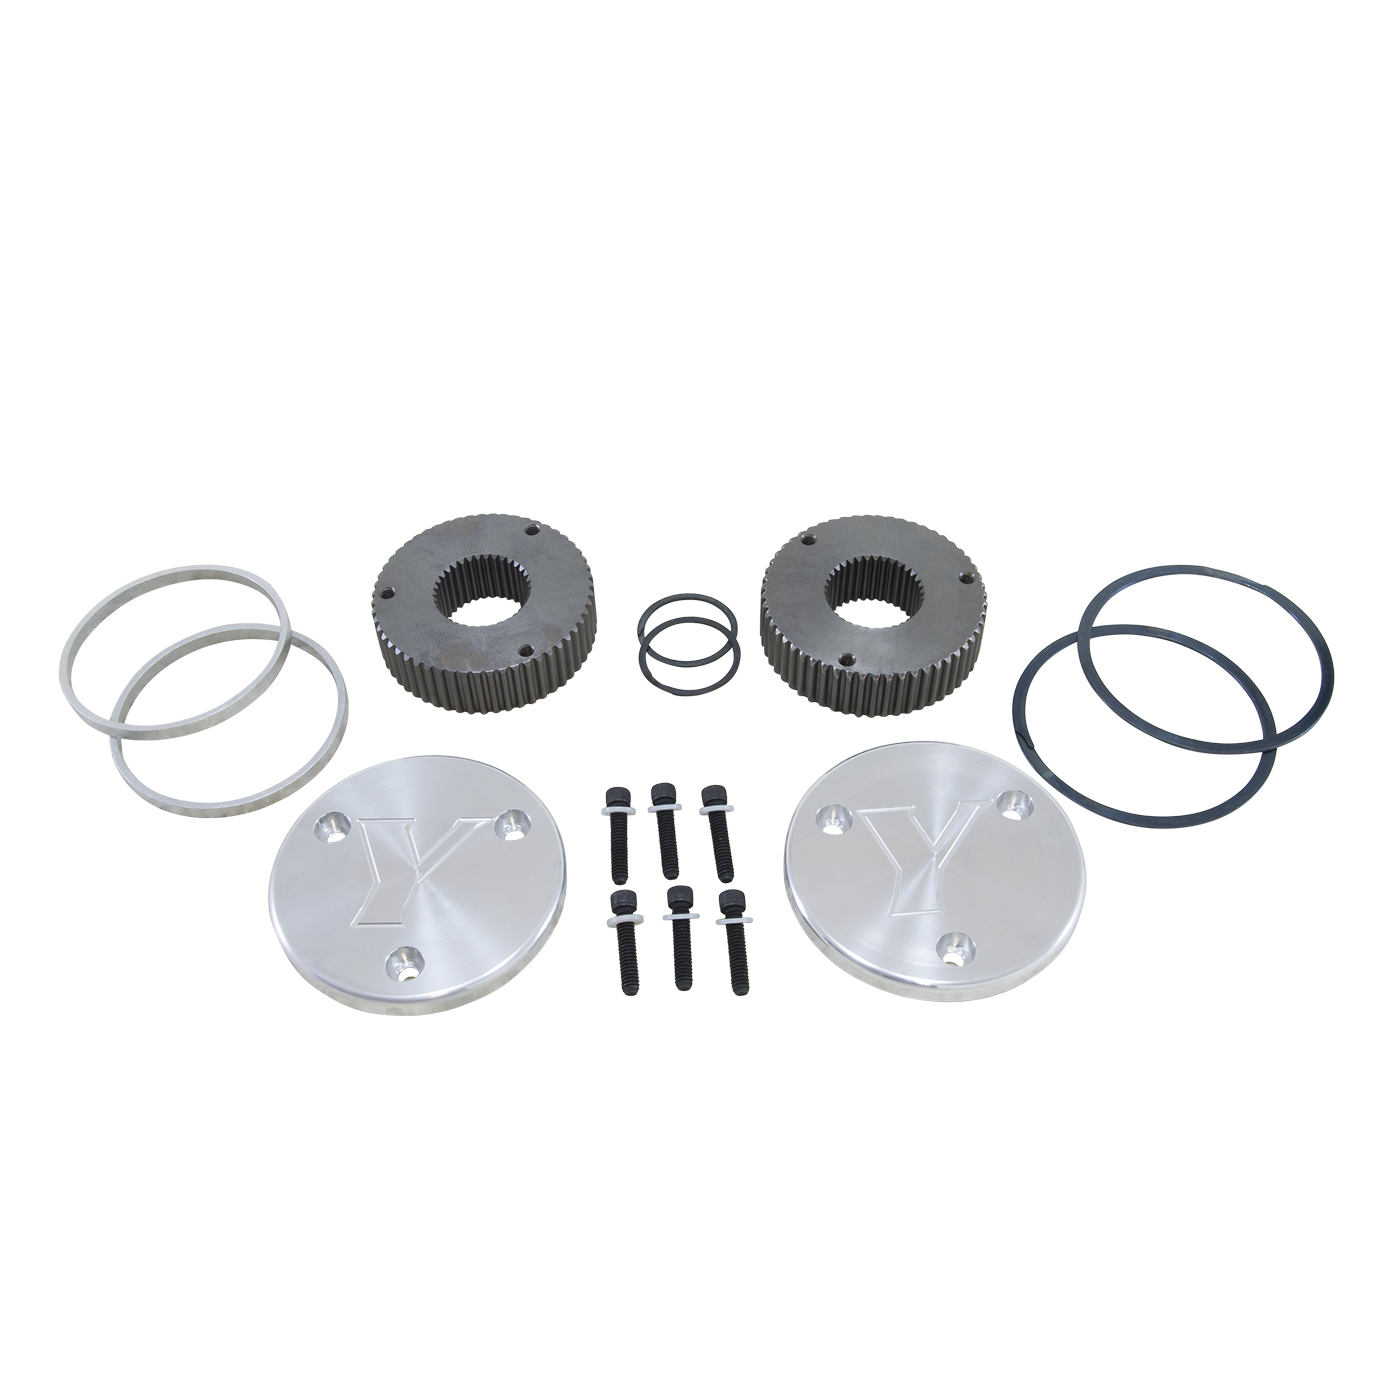 YHC50005 - Yukon Hardcore Drive Flange Kit Dana 60 35-Spl Outer Stubs with Yukon Engraved Caps